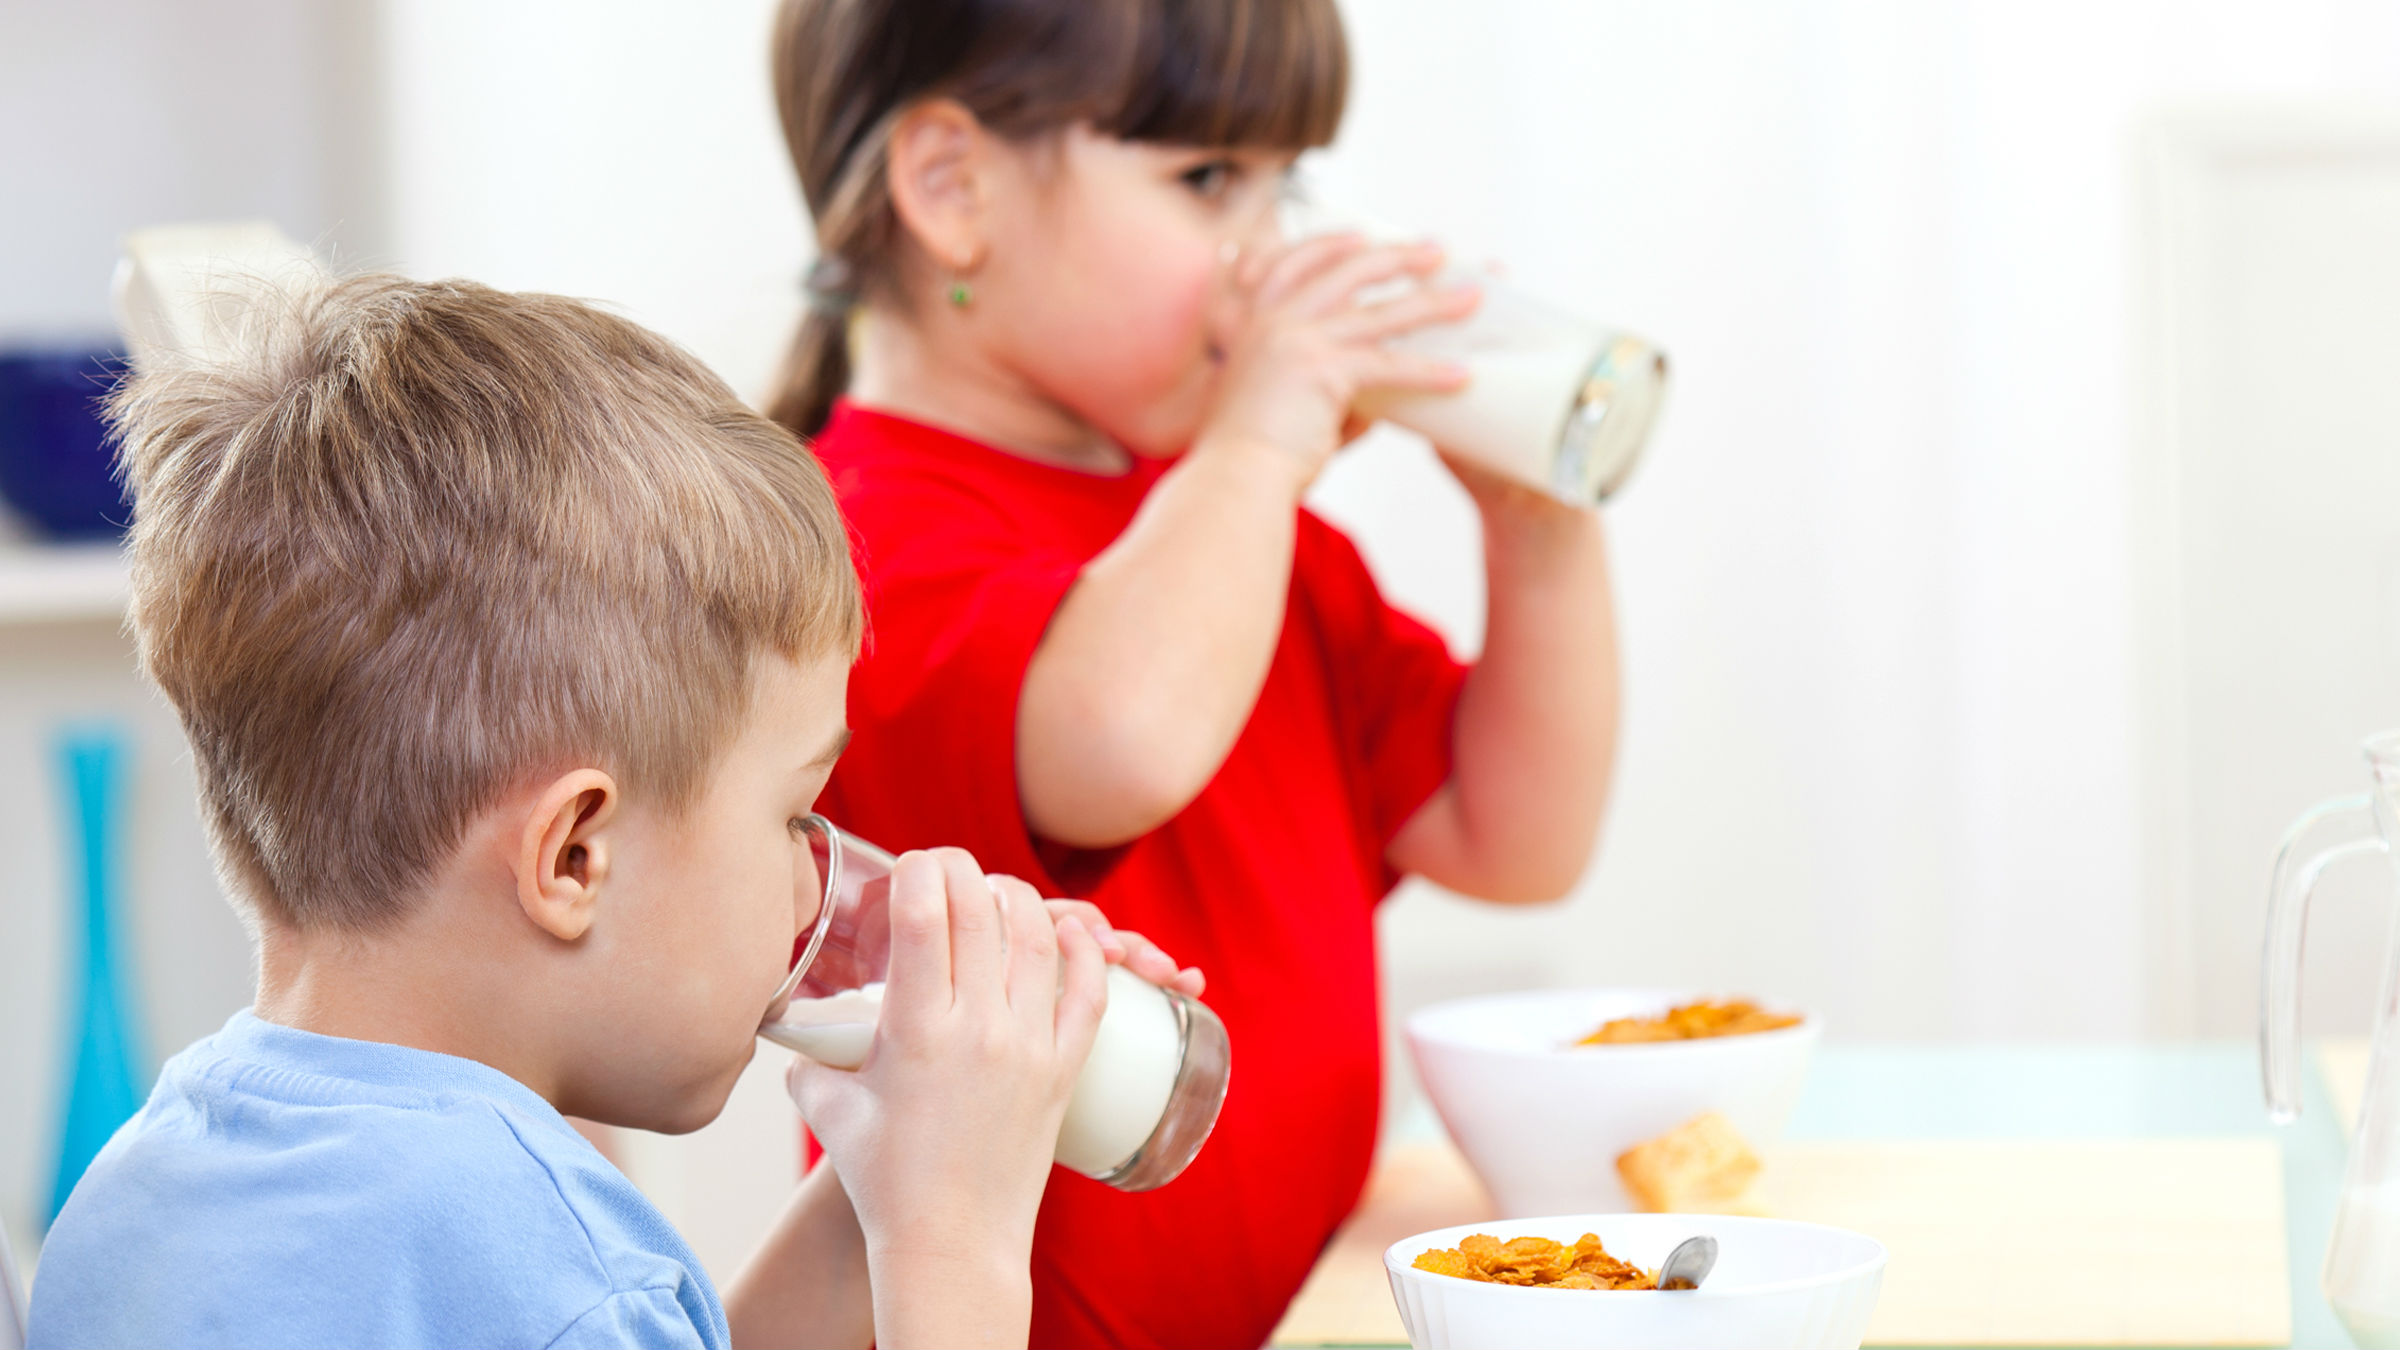 Two children drinking milk from a glass